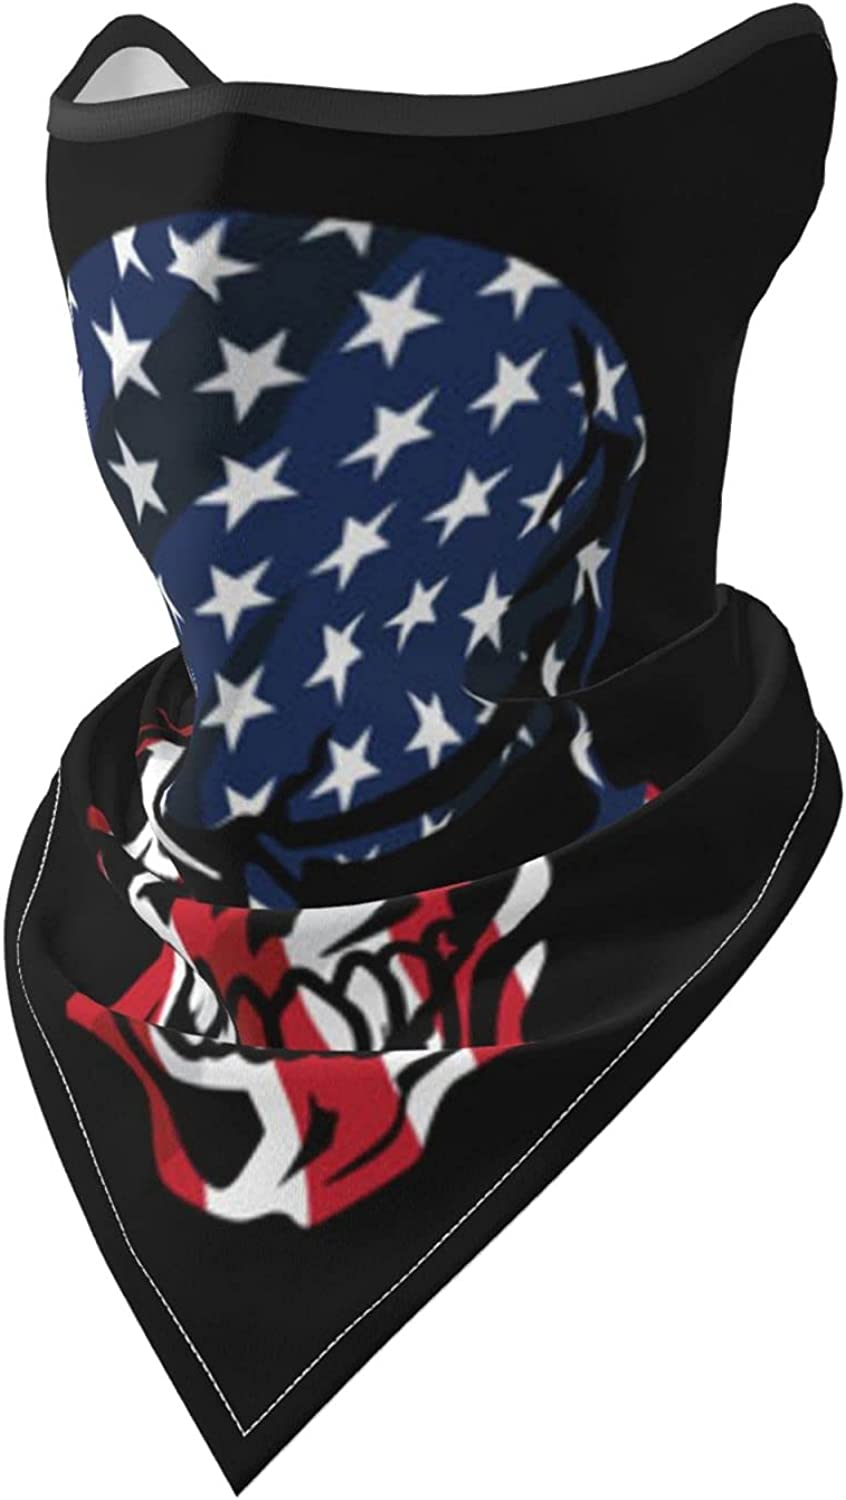 American Flag Skull Isolated Breathable Bandana Face Mask Neck Gaiter Windproof Sports Mask Scarf Headwear for Men Women Outdoor Hiking Cycling Running Motorcycling